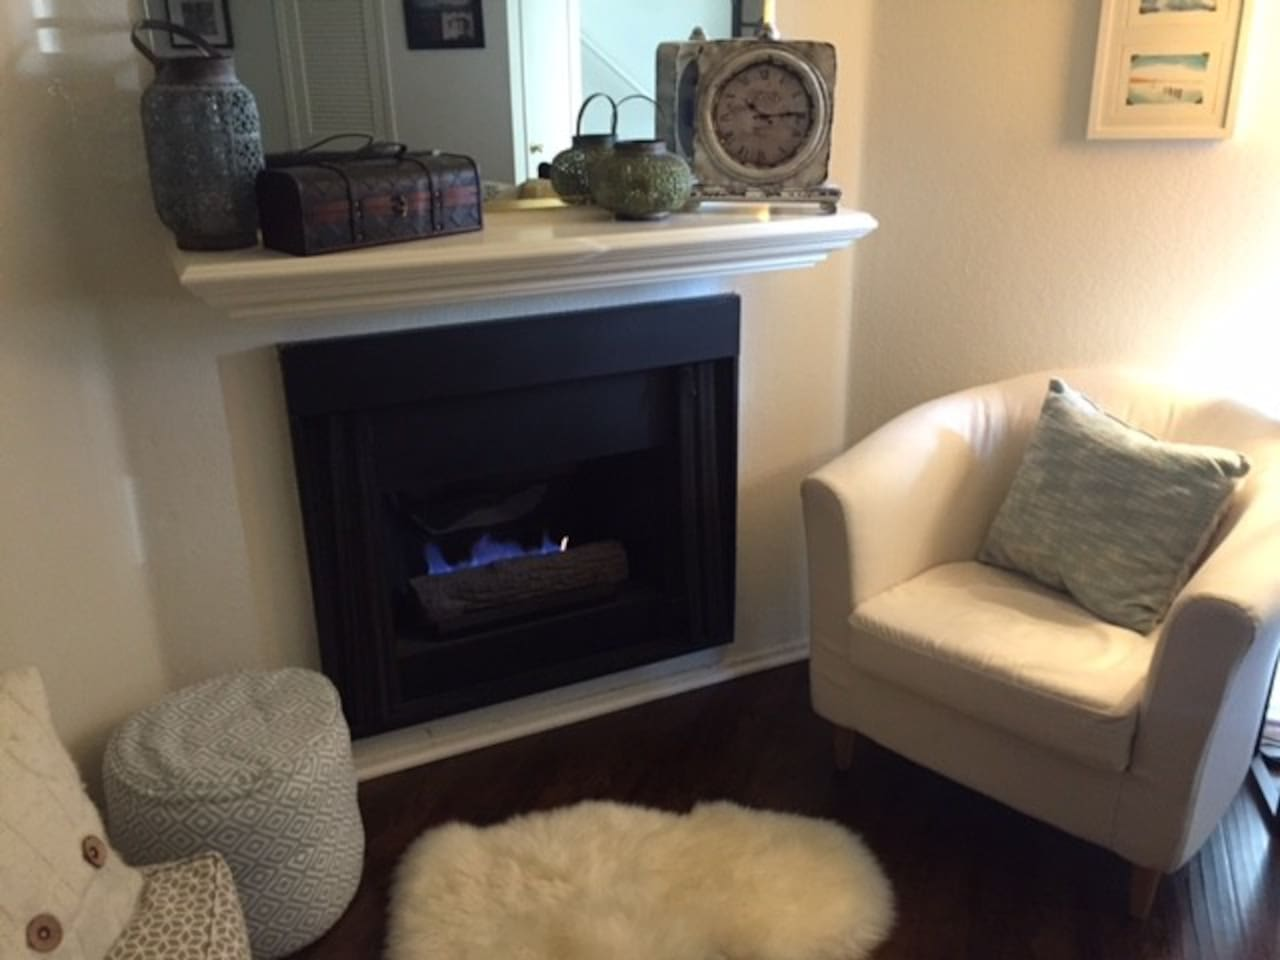 Cozy up next to the fireplace and relax!